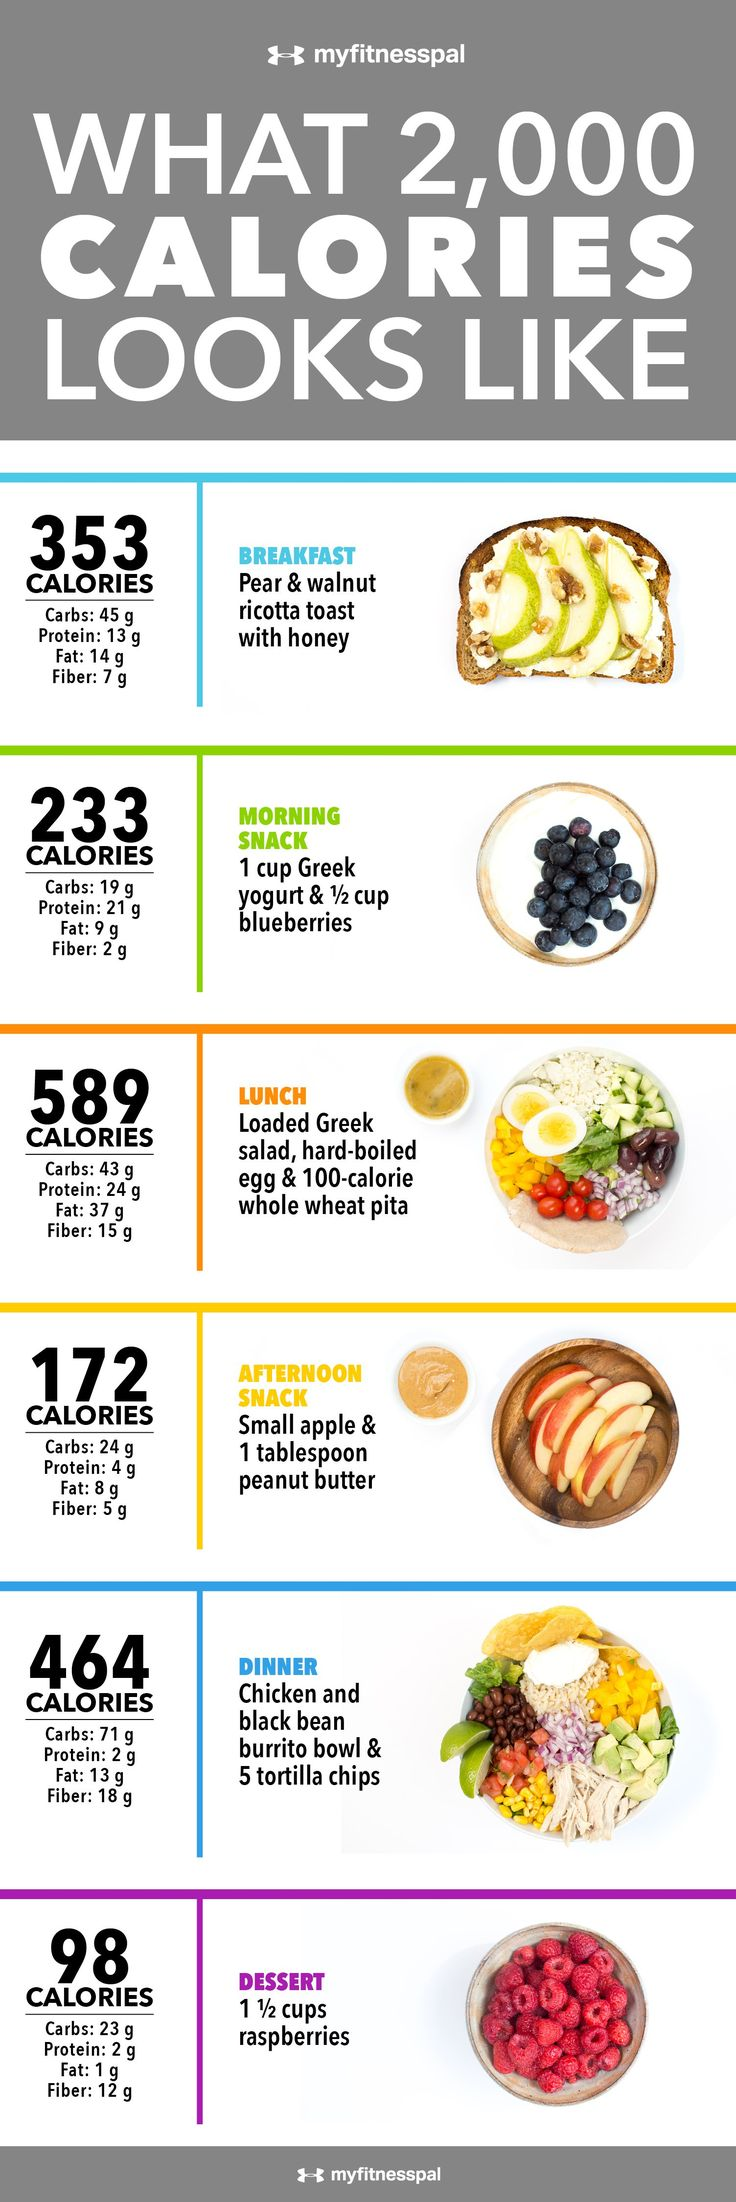 the nutritional values and composition for a balanced diet A balanced diet chart is a representation of a healthy diet chart that comprises of all the required nutrientsit includes all the food groups and ensures that we are getting everything that our body needs through our diet.